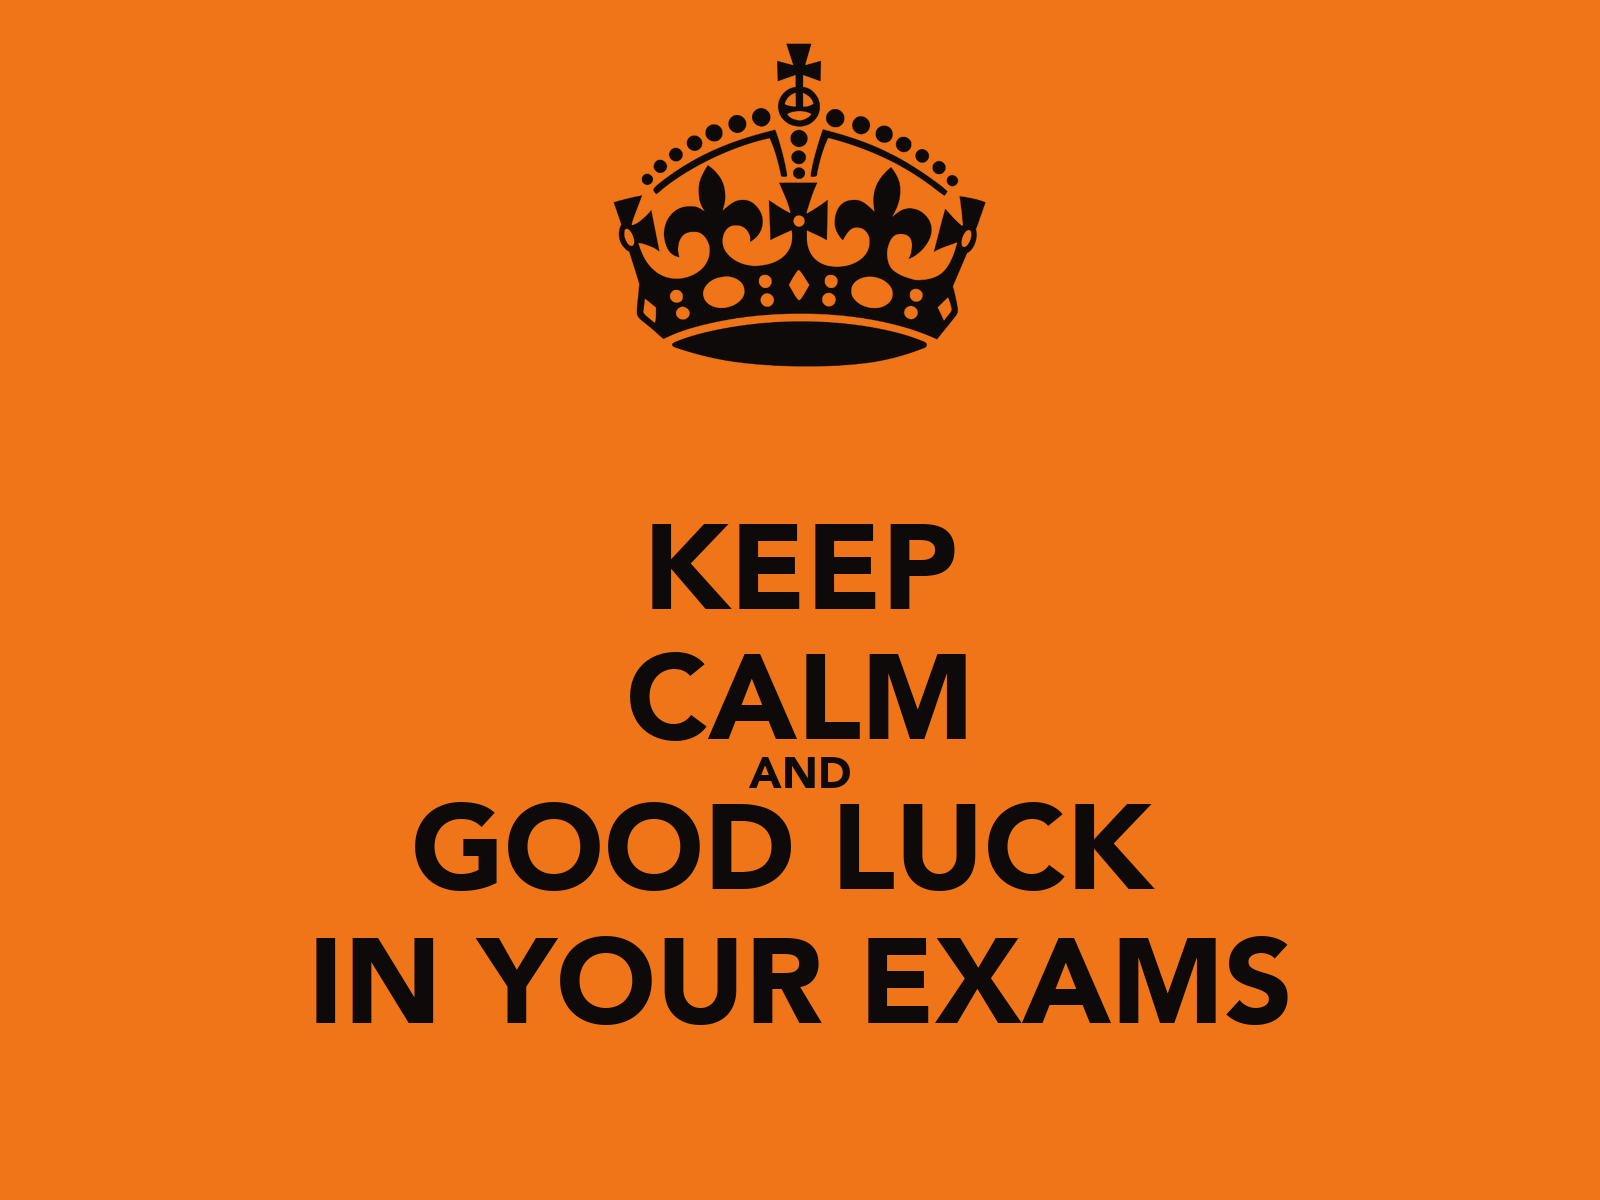 keeping your cool in exams It's quite possible to do well in exams, and still pursue a rich, fulfilled existence but it's not the end of the world if you fail, far from it, and so go easy on the anxiety all in all, to handle the pressure, it's good to keep things in perspective, and do the little things well.